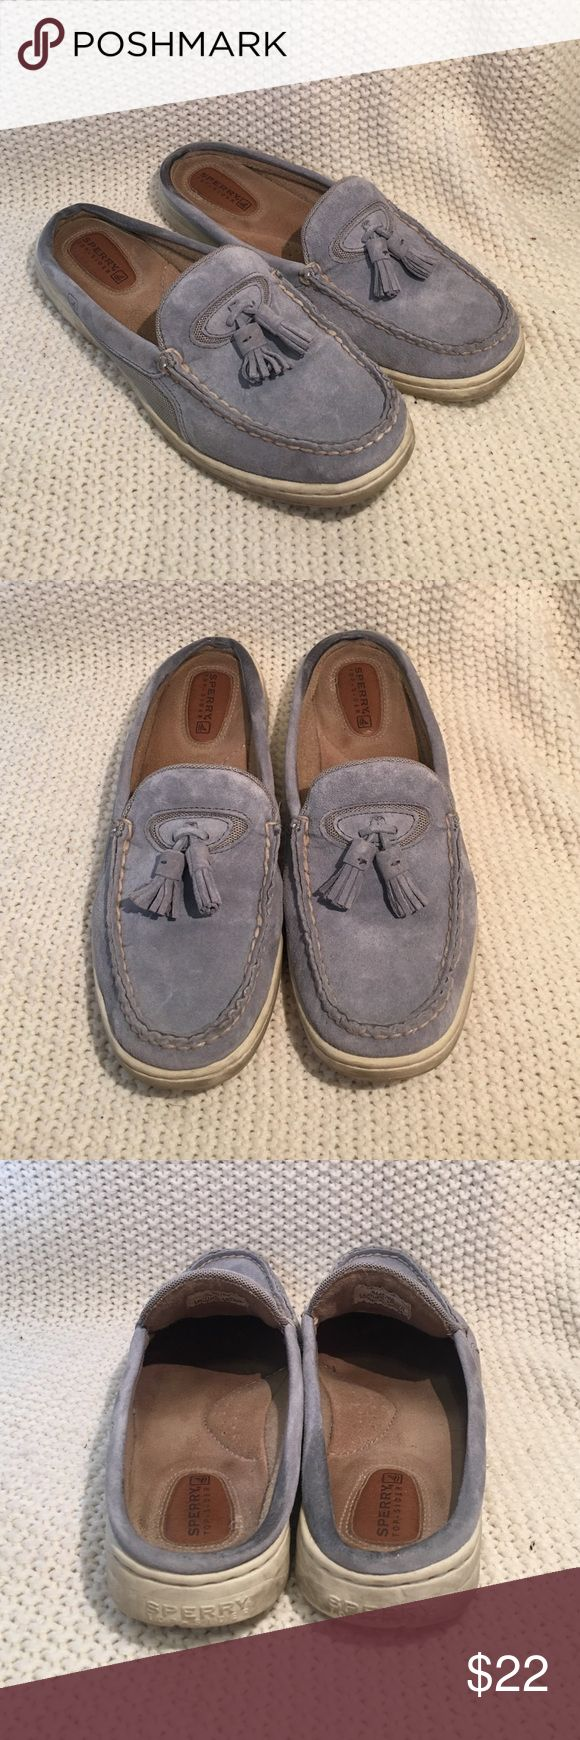 💥End of Summer Sale💥Sperry Slip On Boat Shoes Gorgeous suede blue Sperry slip ons. Great condition. No issues. Sperry Top-Sider Shoes Flats & Loafers